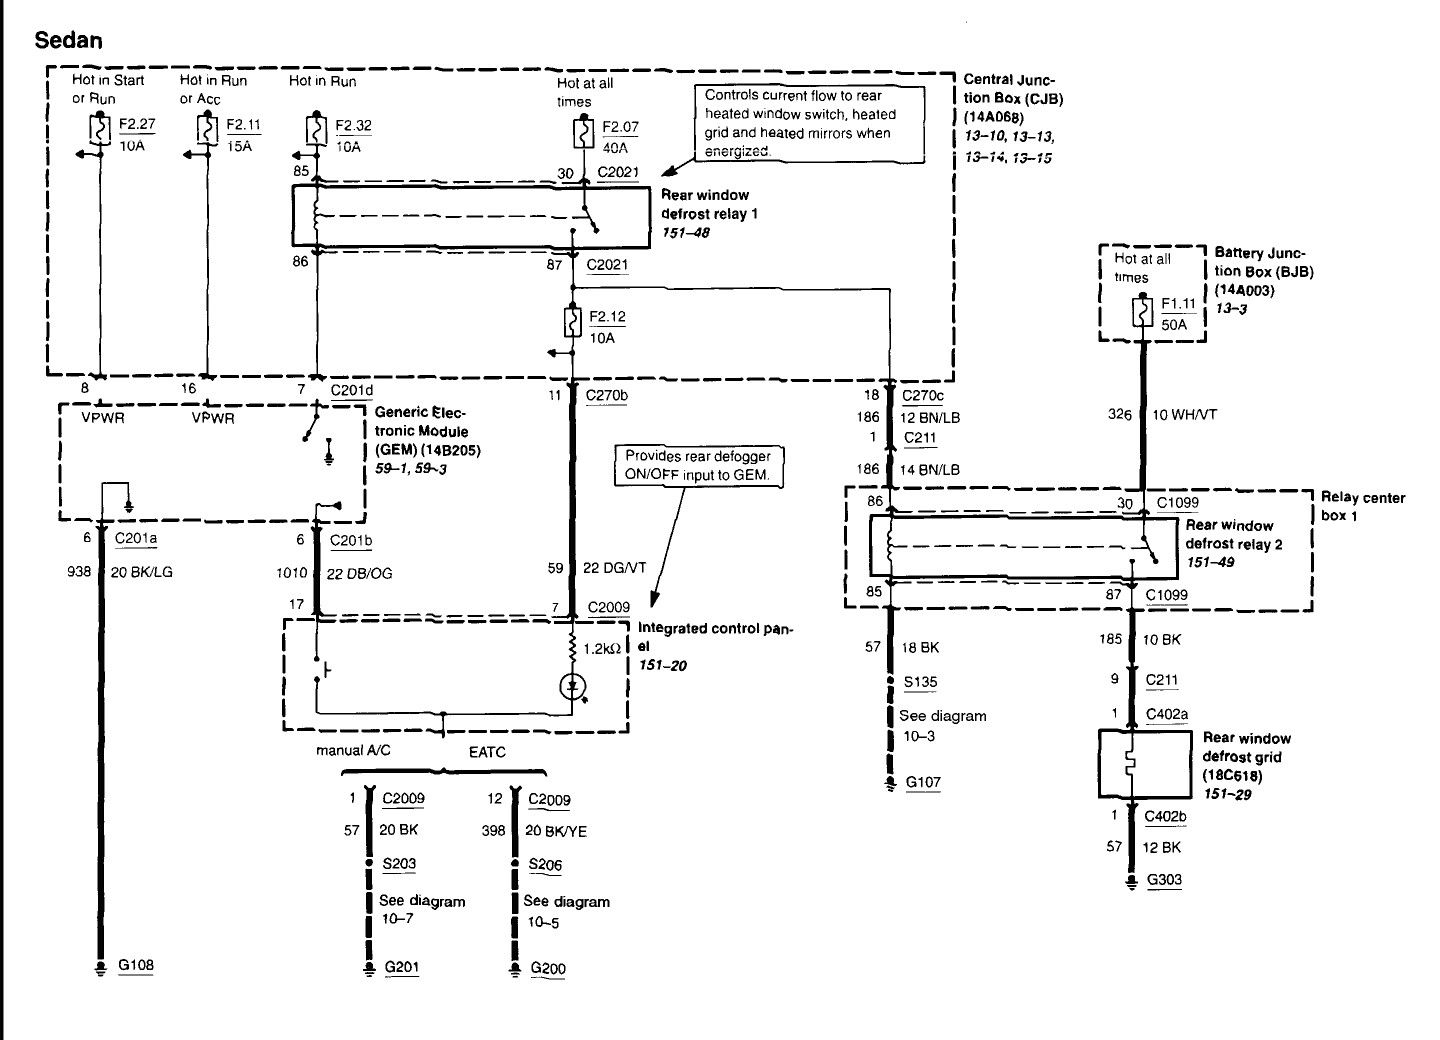 Image Ford Harness Wiring Diagram Taurus Wiring Harness ... on 1997 ford taurus wiring schematic, 2007 ford taurus specifications, 2004 ford taurus wiring schematic, 2007 ford taurus oxygen sensor, 2007 ford taurus battery, 2007 ford taurus dimensions, 2007 ford taurus speaker, 1996 ford taurus wiring schematic, 2007 ford taurus horn relay, 2007 ford taurus fuel pump relay, 2000 ford taurus wiring schematic, 2007 ford taurus owners manual, 2007 ford taurus alternator location, 1999 ford taurus wiring schematic, 2007 ford f750 wiring schematic, 2007 ford taurus gauges, 2001 ford taurus wiring schematic, 2003 ford taurus wiring schematic, 2006 ford taurus wiring schematic, 2007 ford taurus recalls,